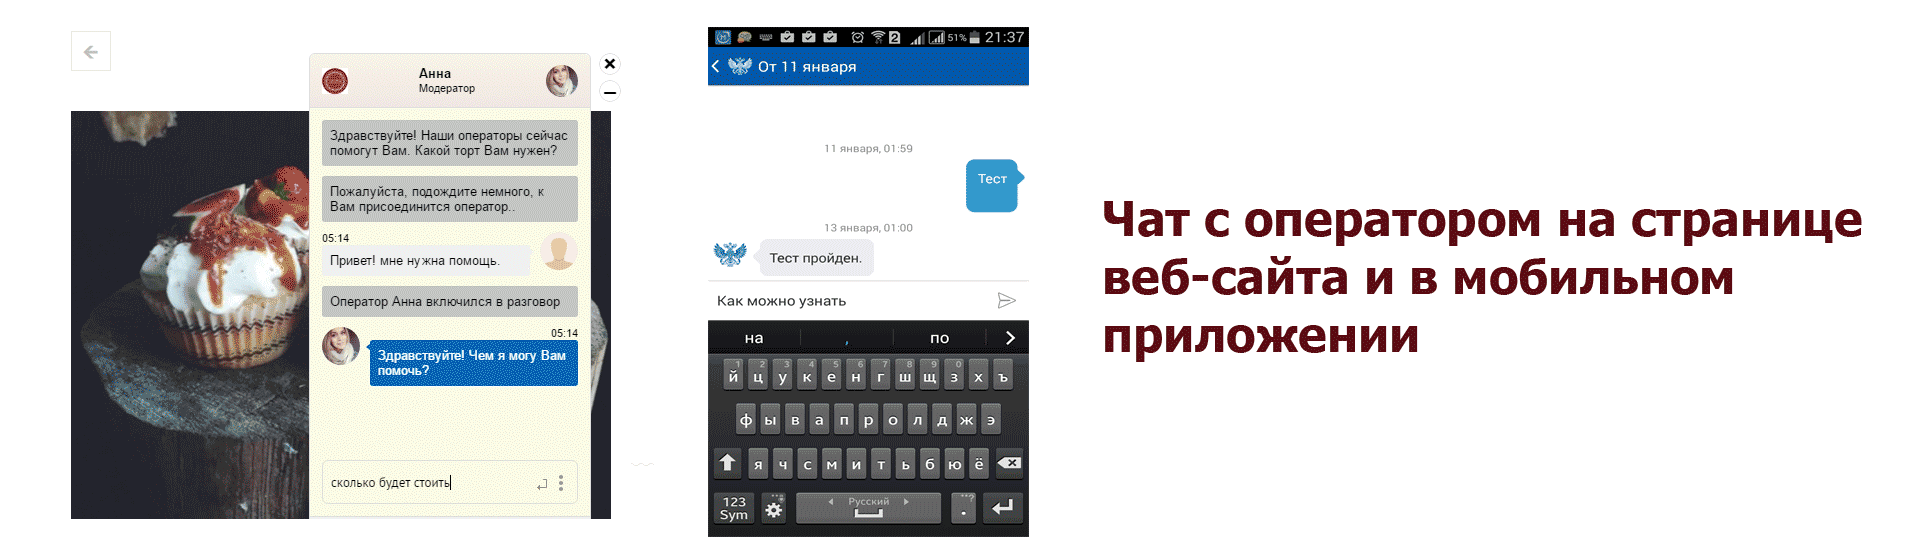 web-chat и mobile chat